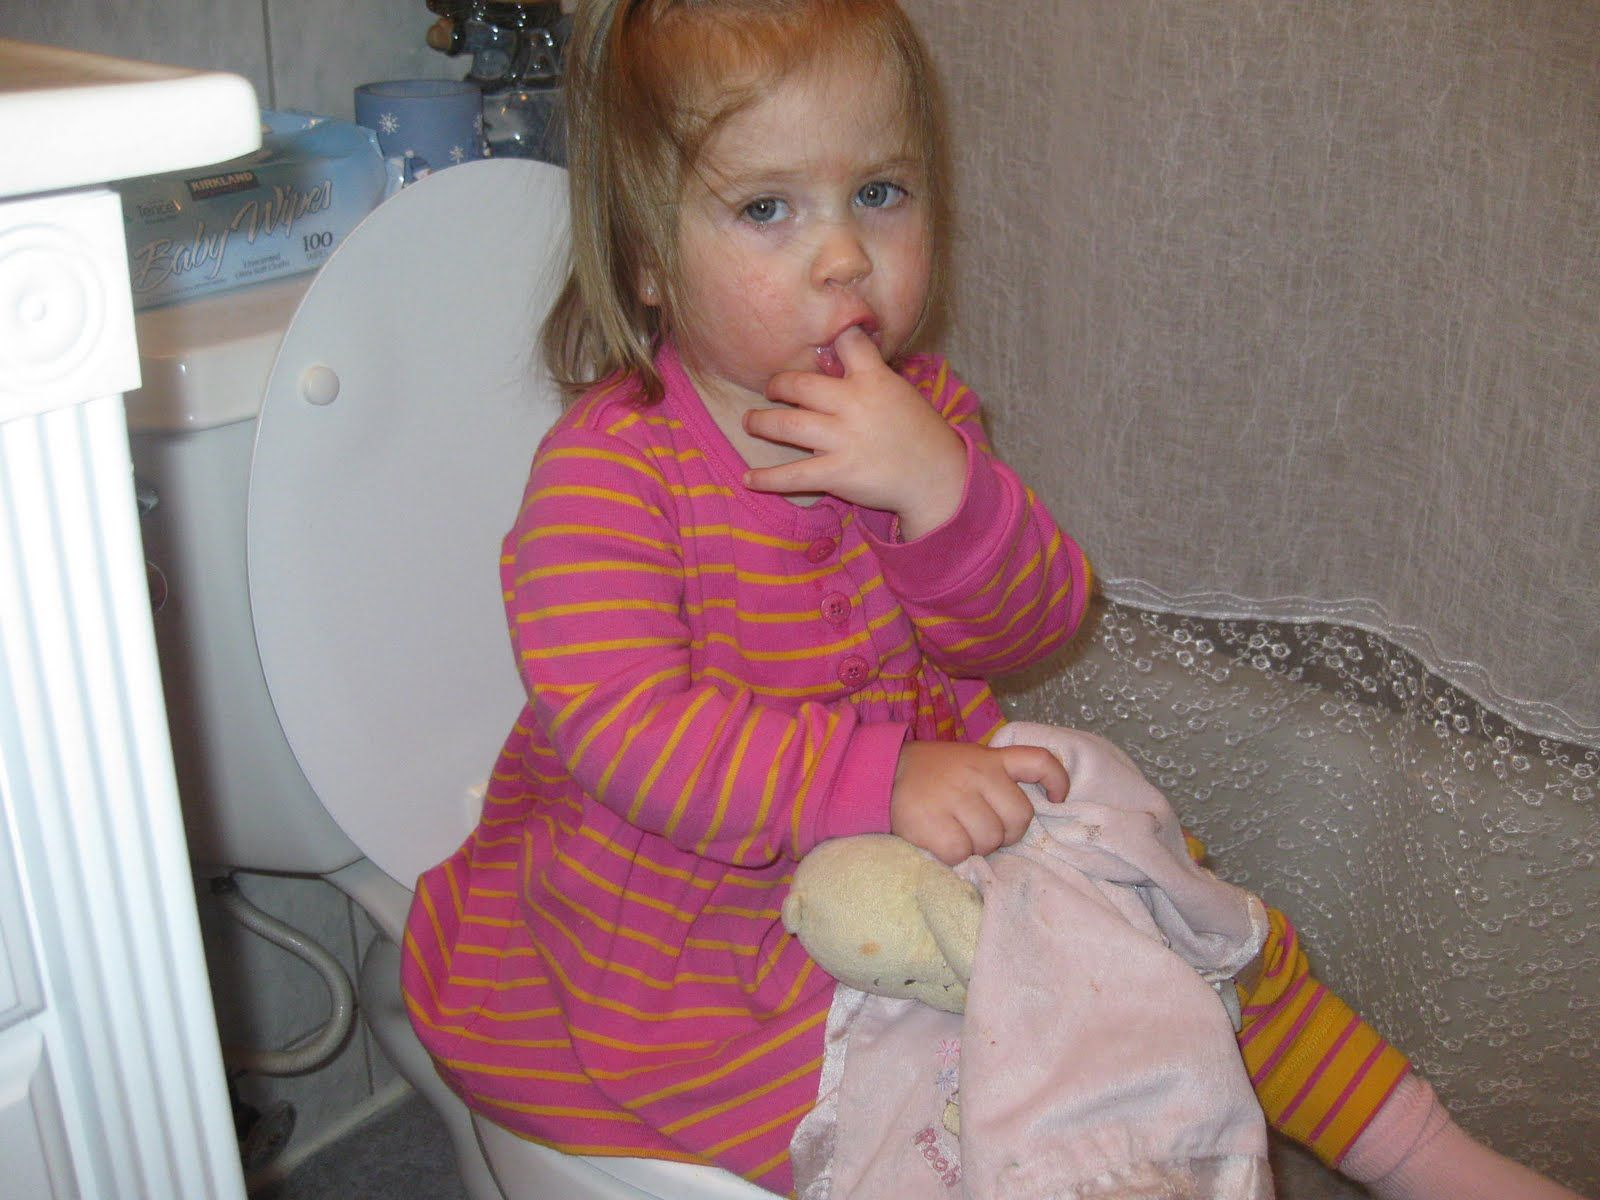 Imgsrc ru album search - Potty Training Girls Succesful This Methods You Ll Miss Many Things Once Your Baby